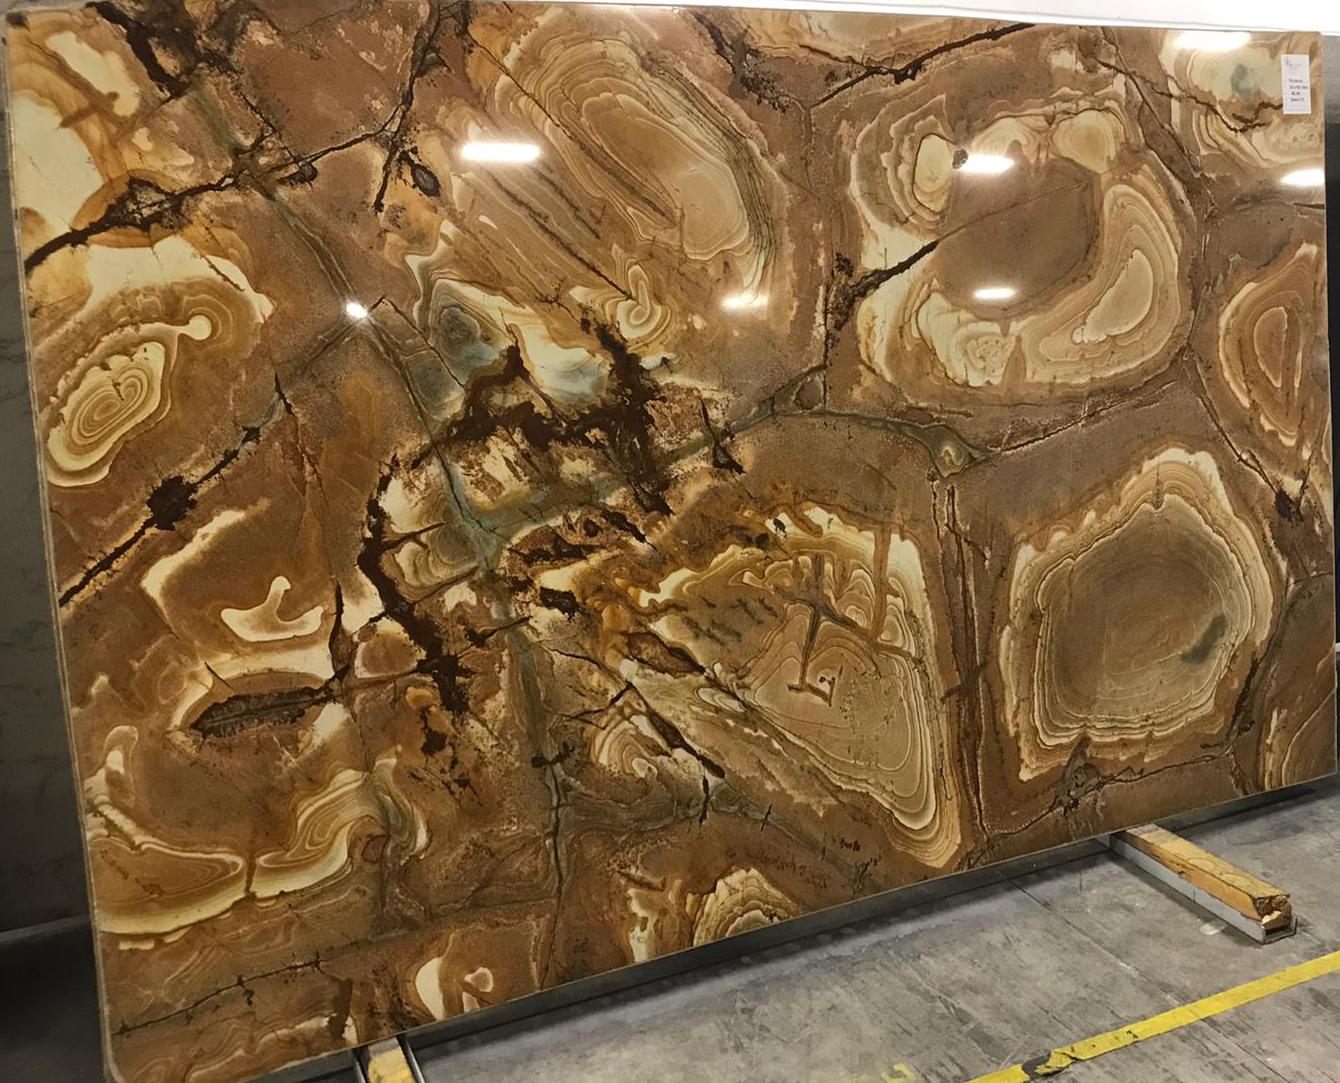 Palomino is a very luxury granite. It is the most popular material for luxury hotels and home decorations.